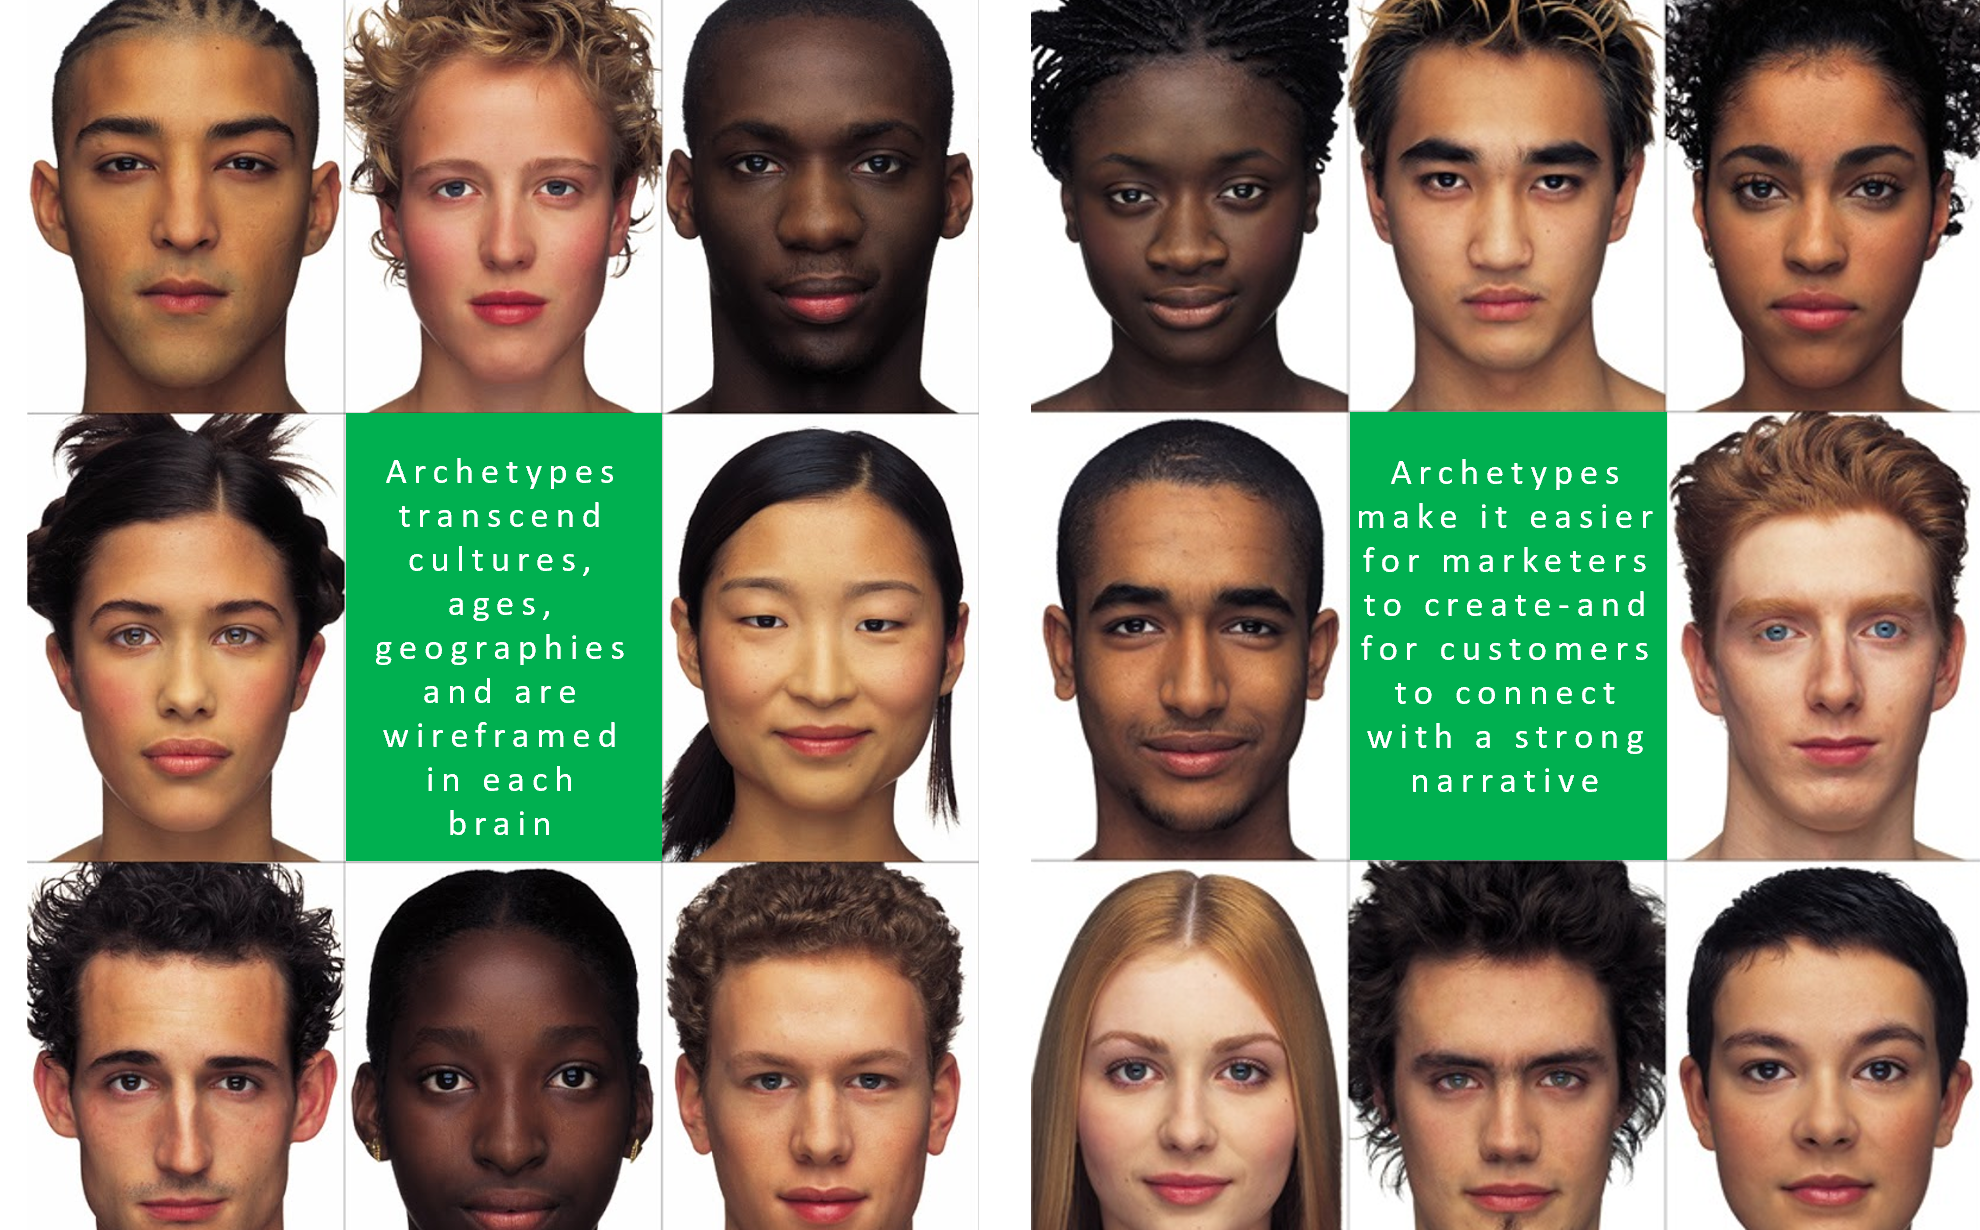 united colors of archetypes